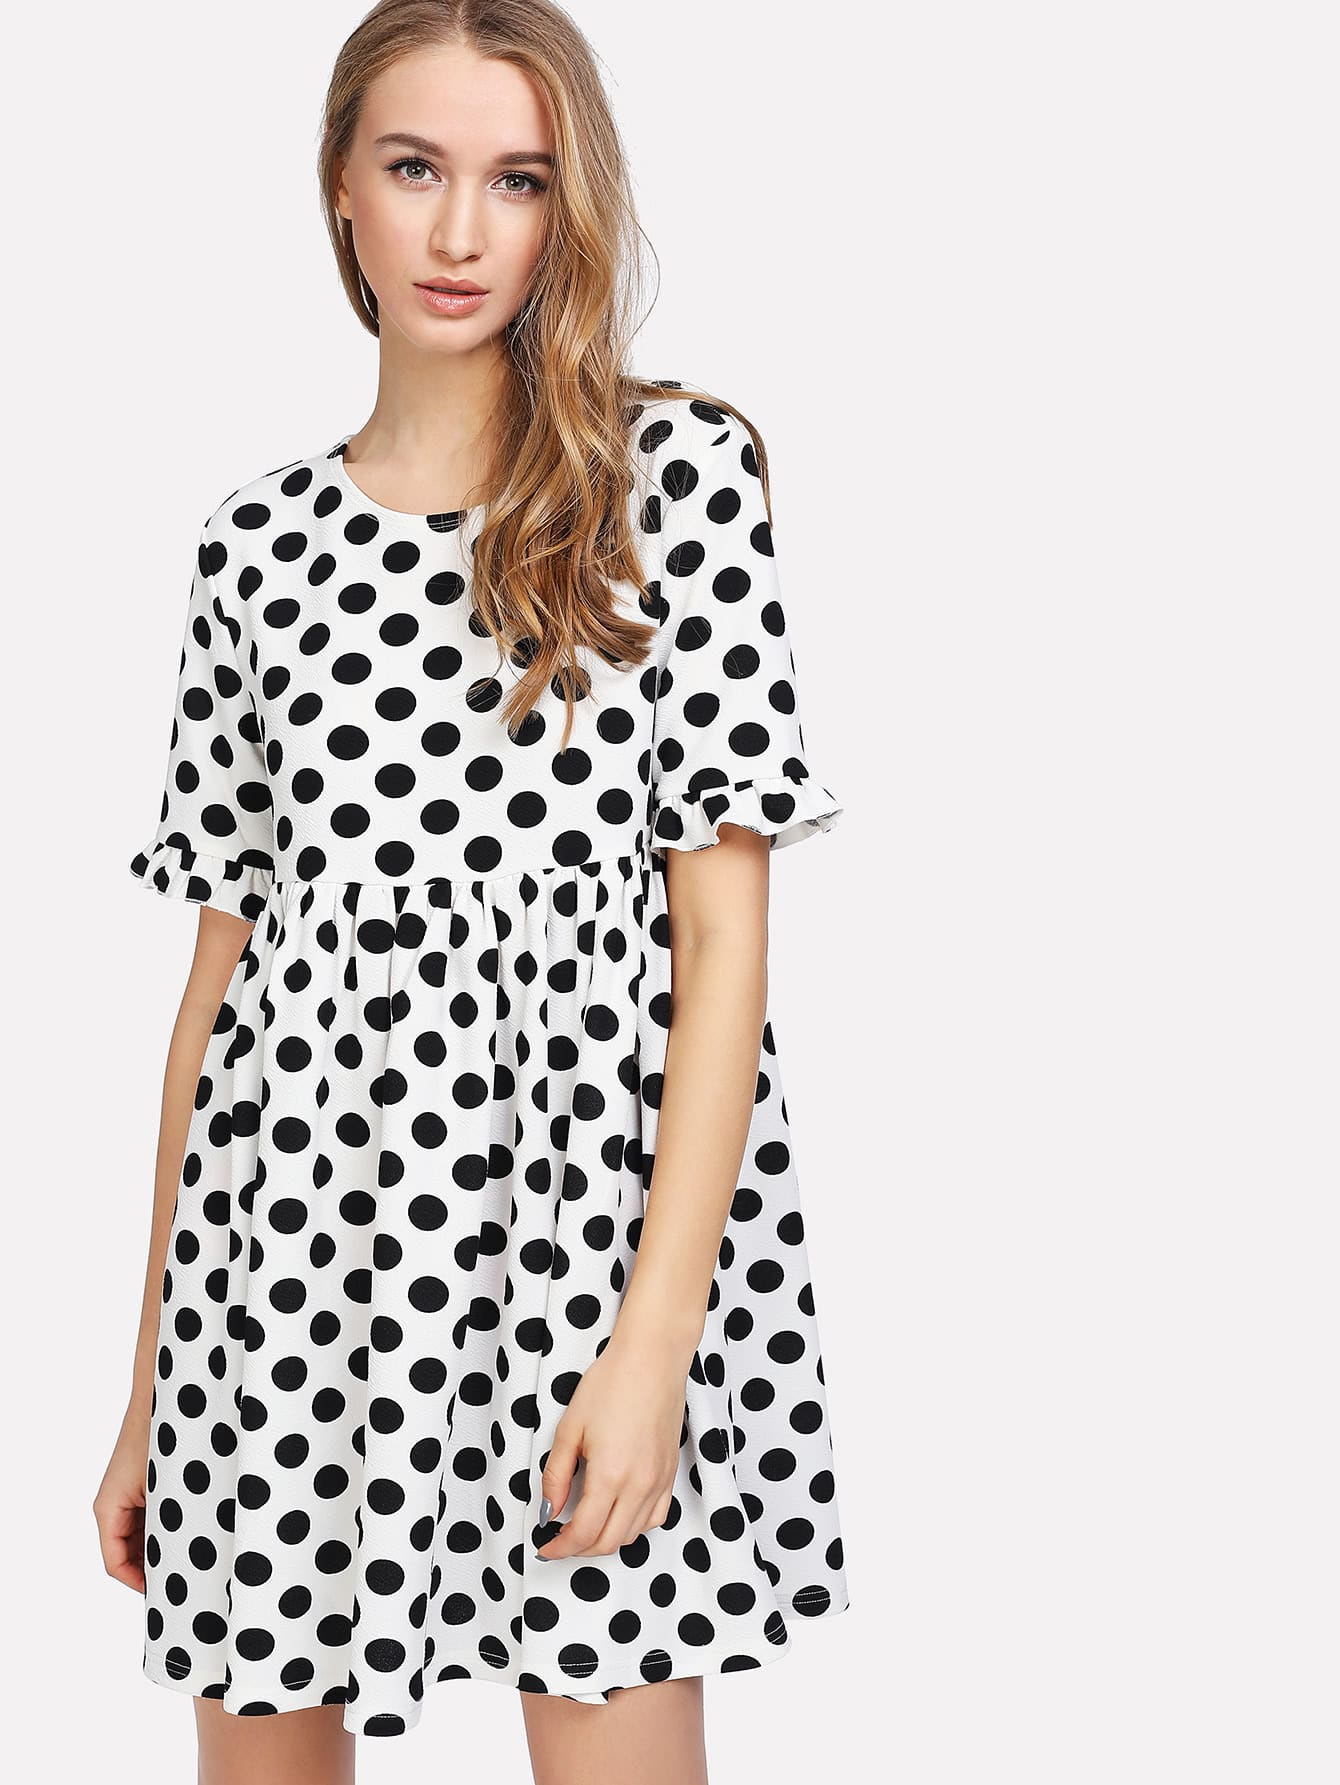 Frill Cuff Smock Polka Dot Dress dot mesh overlay frill detail fluted cuff top